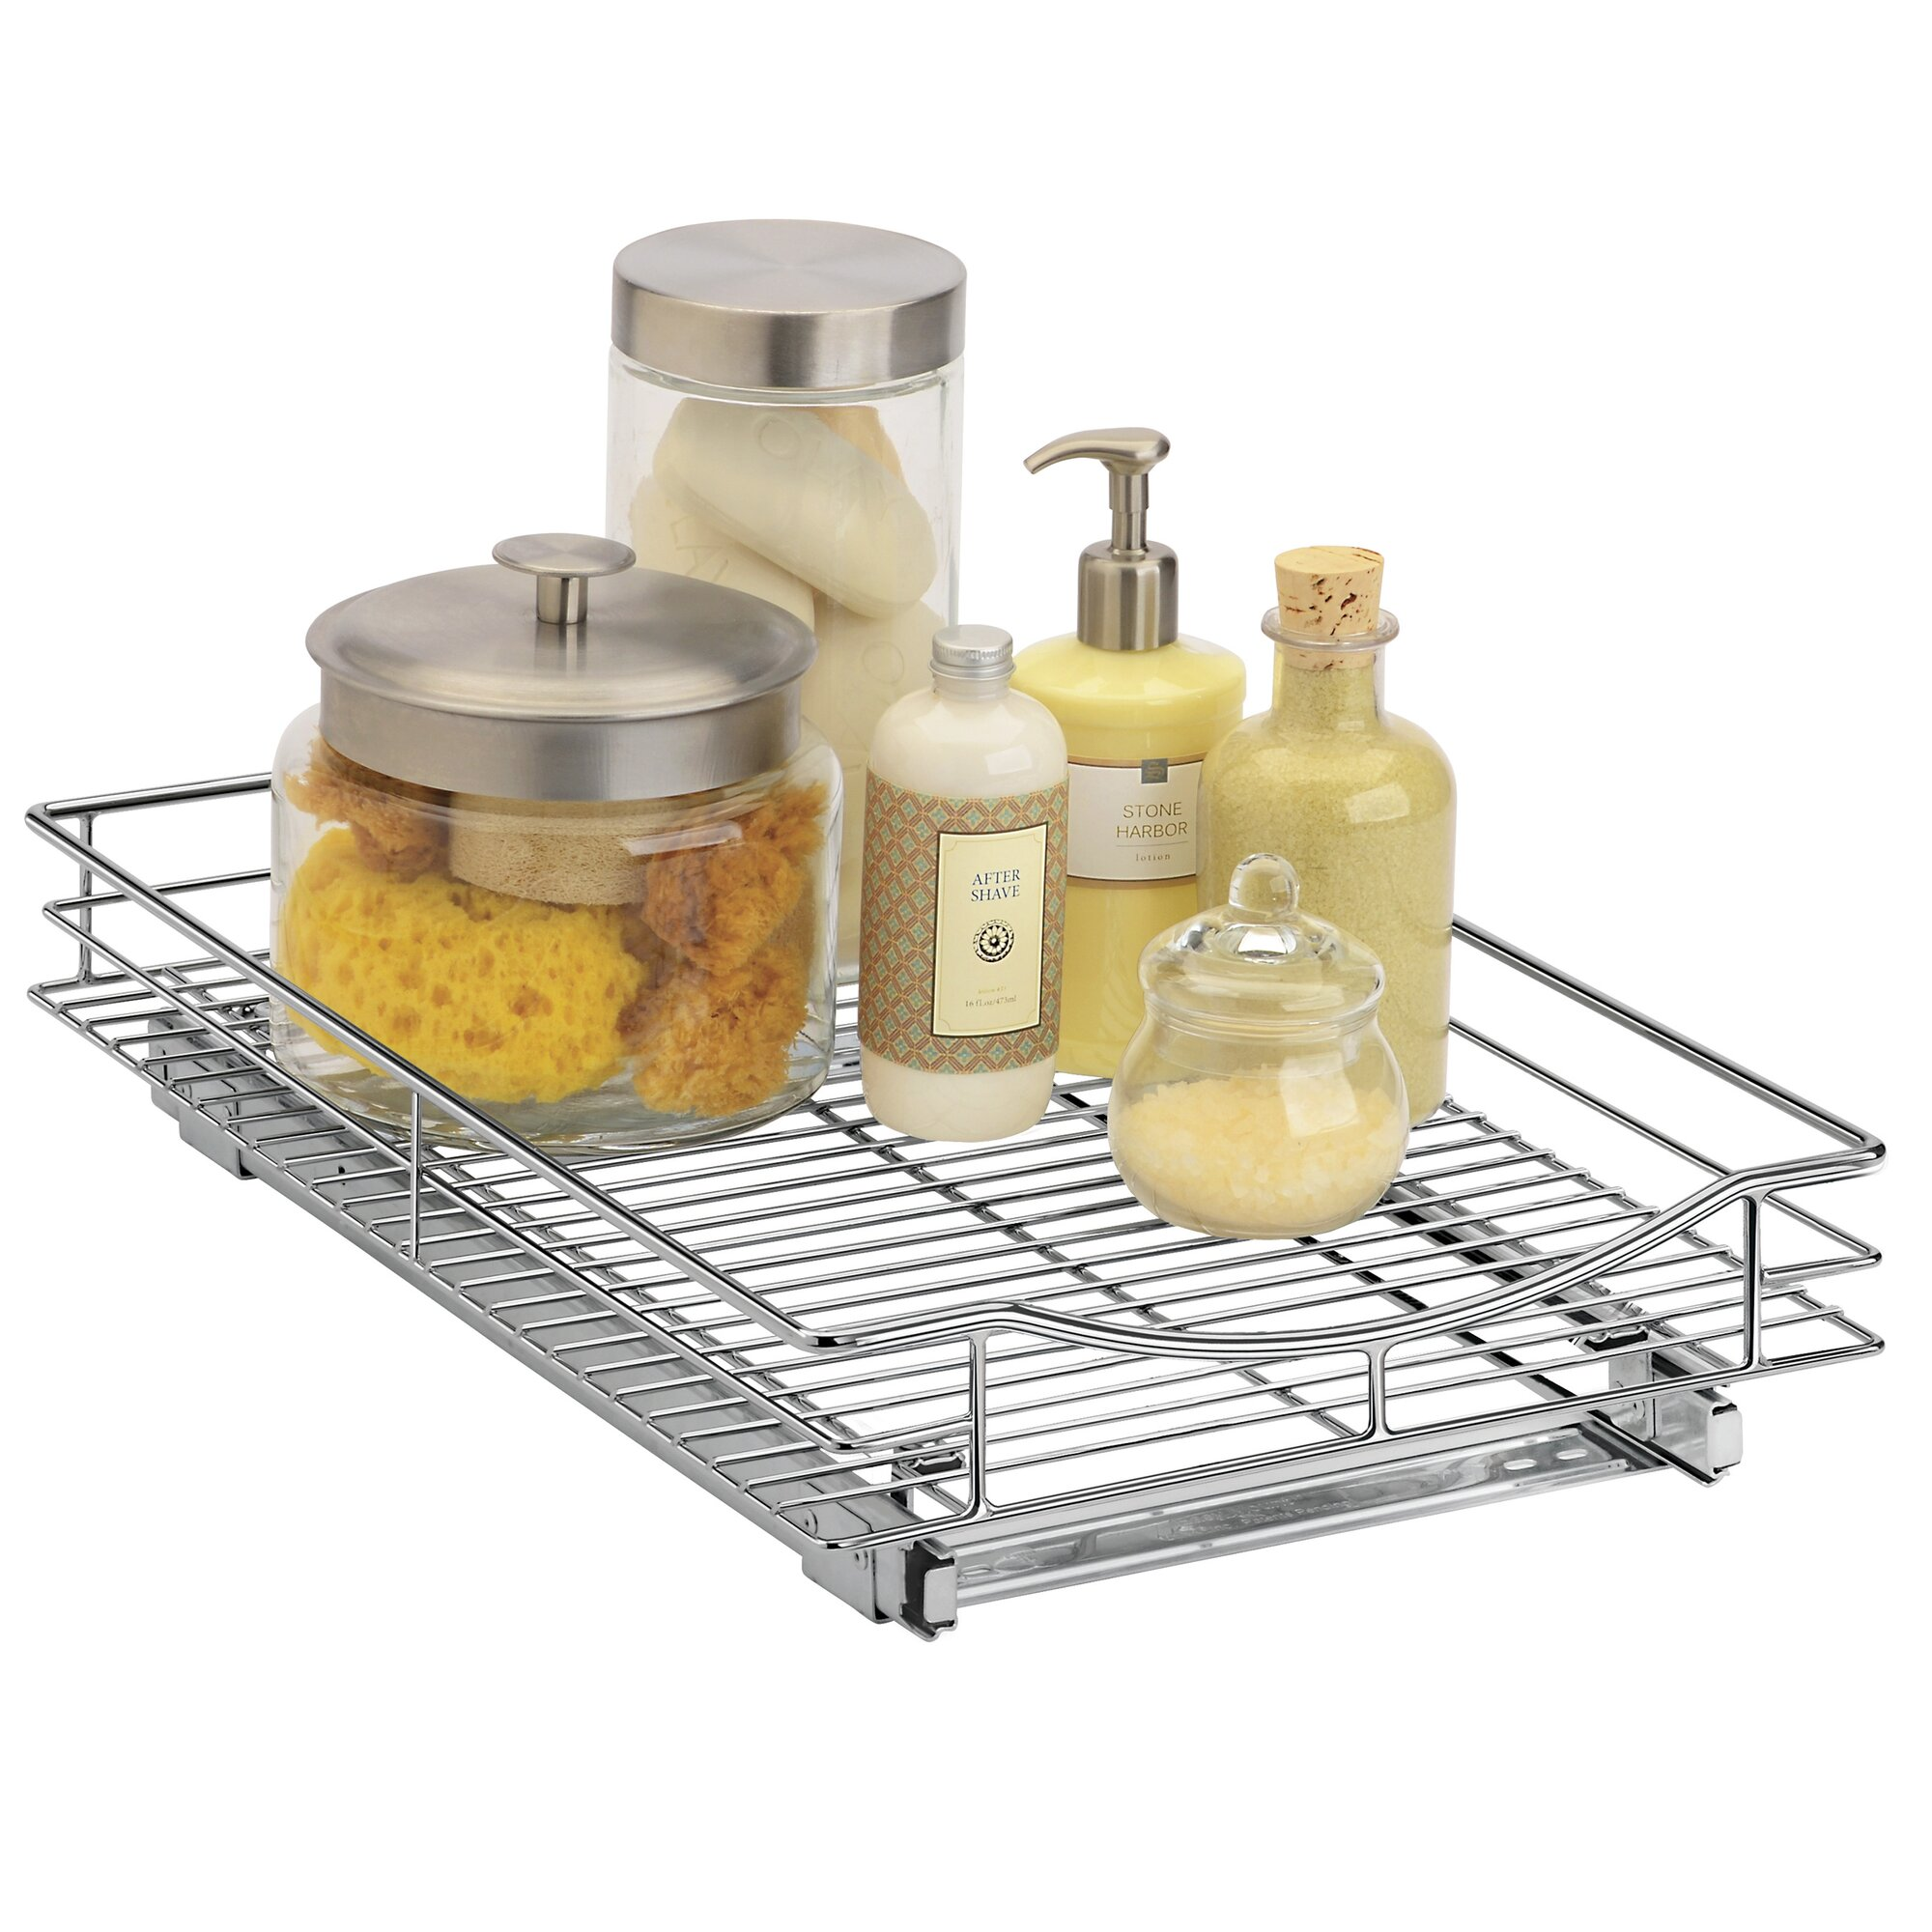 Lynk Roll Out Cabinet Organizer - Pull Out Drawer - Under Cabinet ...